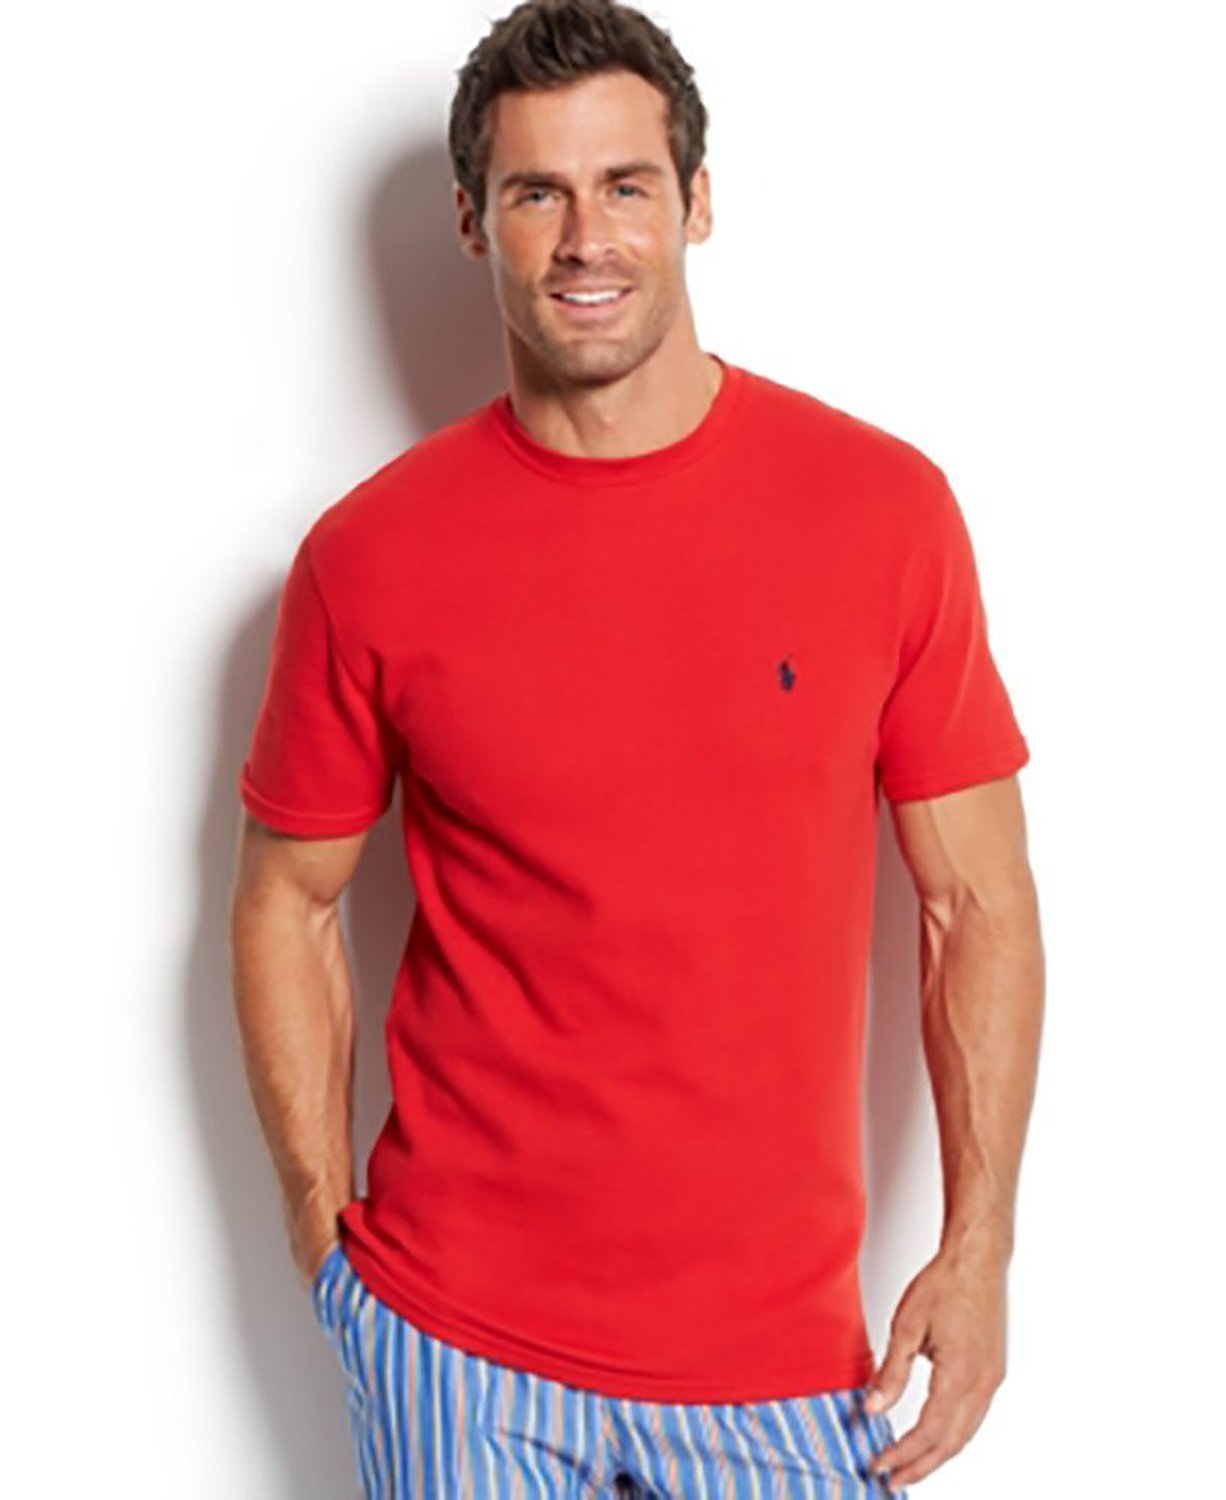 67f4af2db Get Quotations · Polo Ralph Lauren Waffle-Knit Thermal Crew-Neck T-Shirt  Red Large